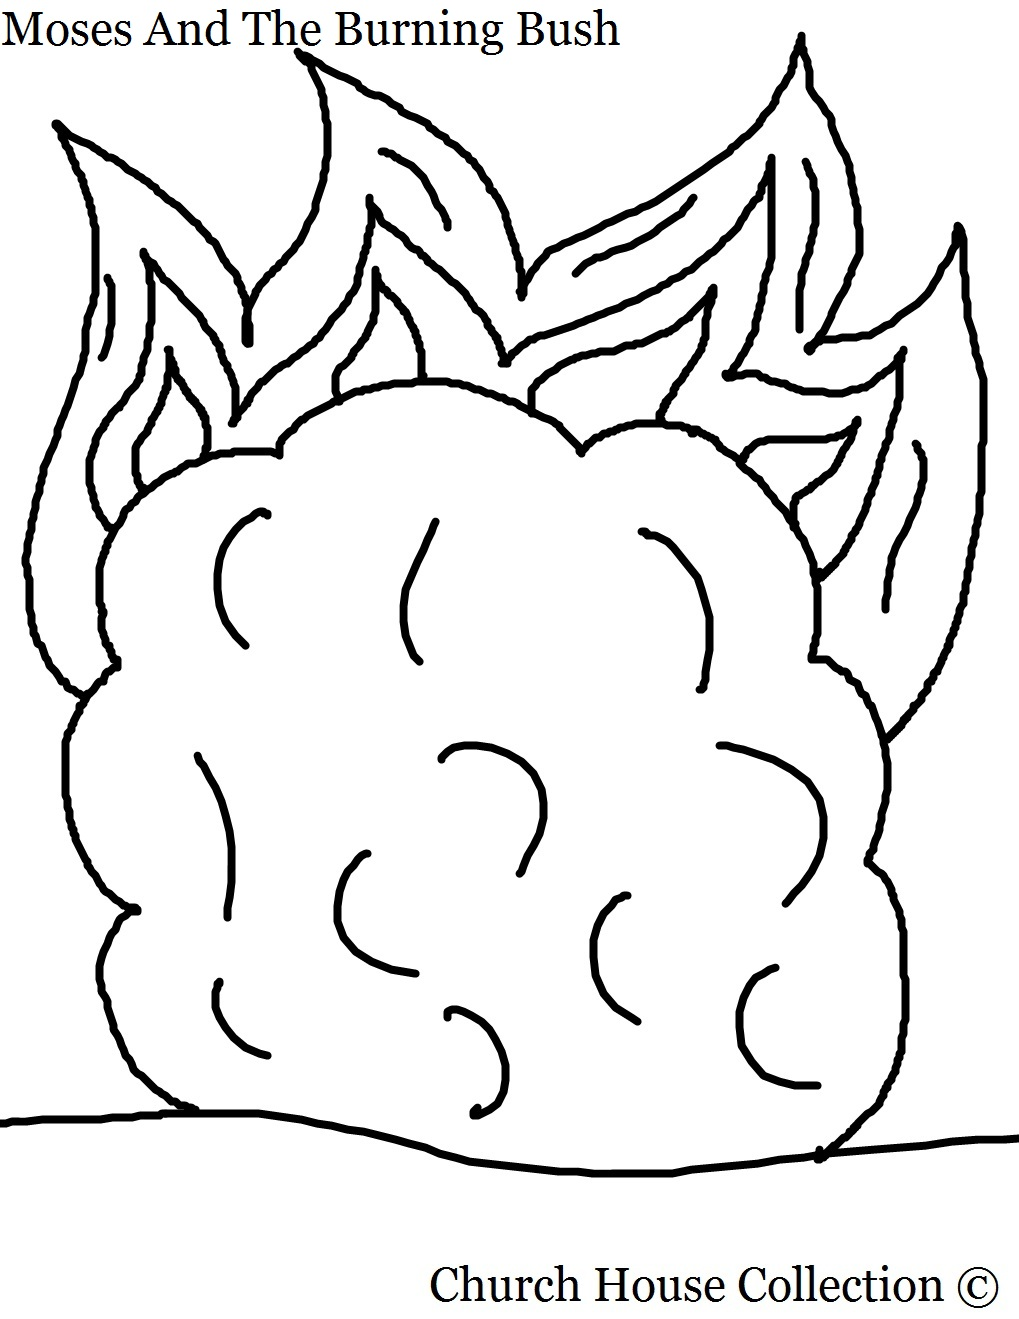 Coloring Pages Moses And The Burning Bush Coloring Pages moses and the burning bush coloring pages with words page